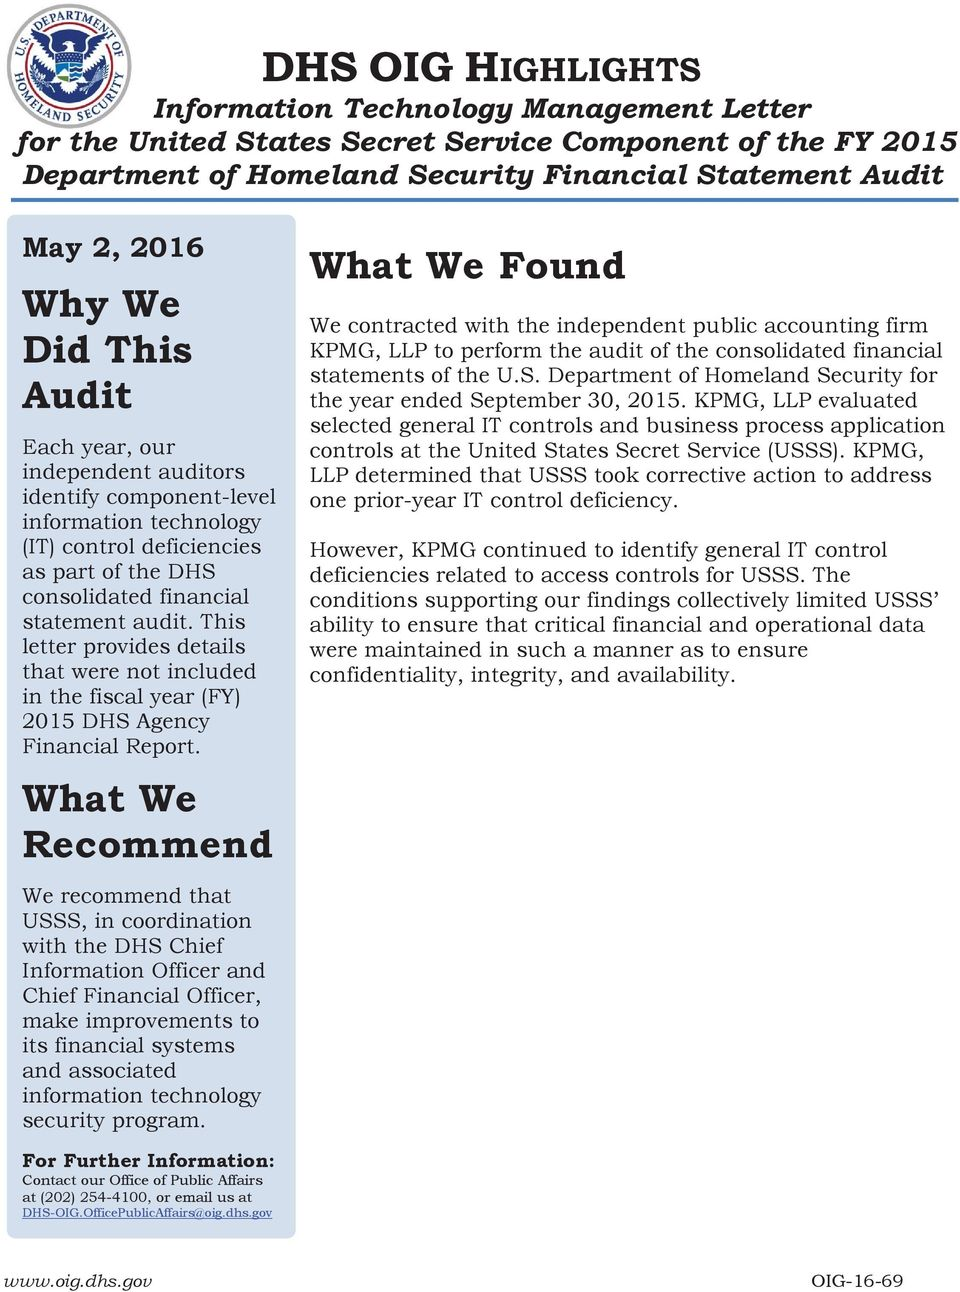 This letter provides details that were not included in the fiscal year (FY) 2015 DHS Agency Financial Report.